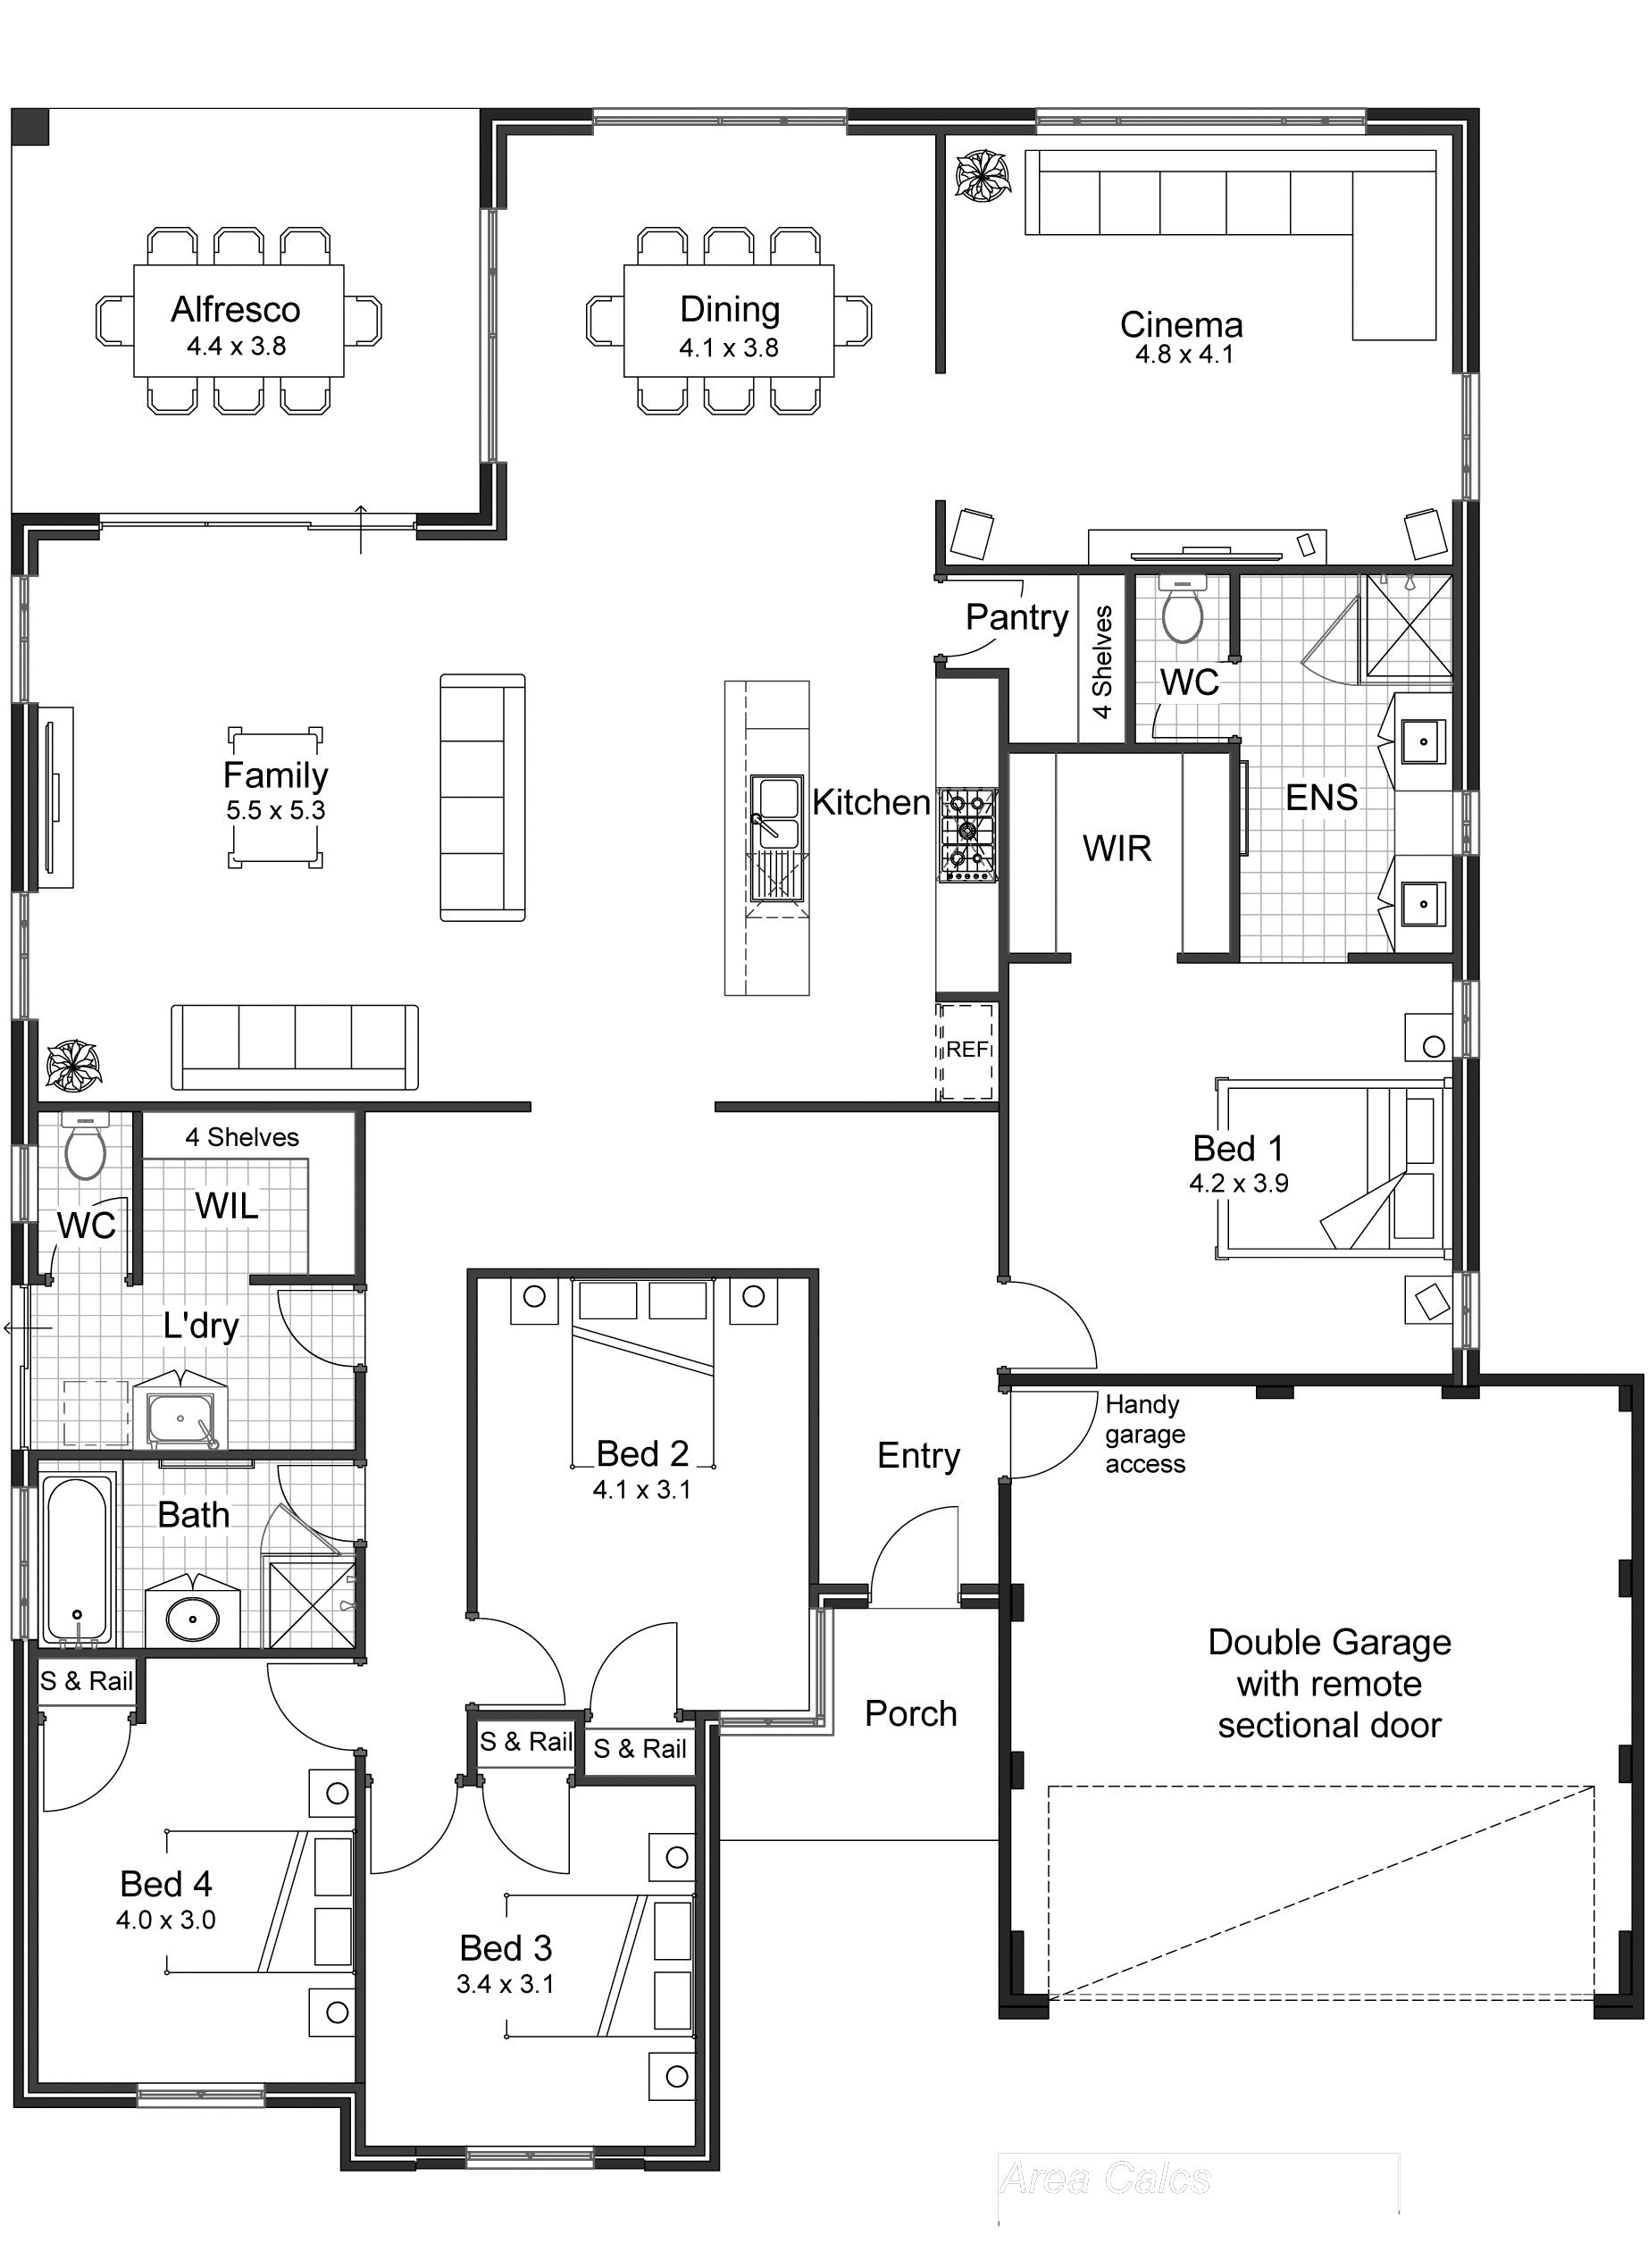 Creative open floor plans homes inspirational home decorating unique kitchen pinterest - Open floor house plans ...